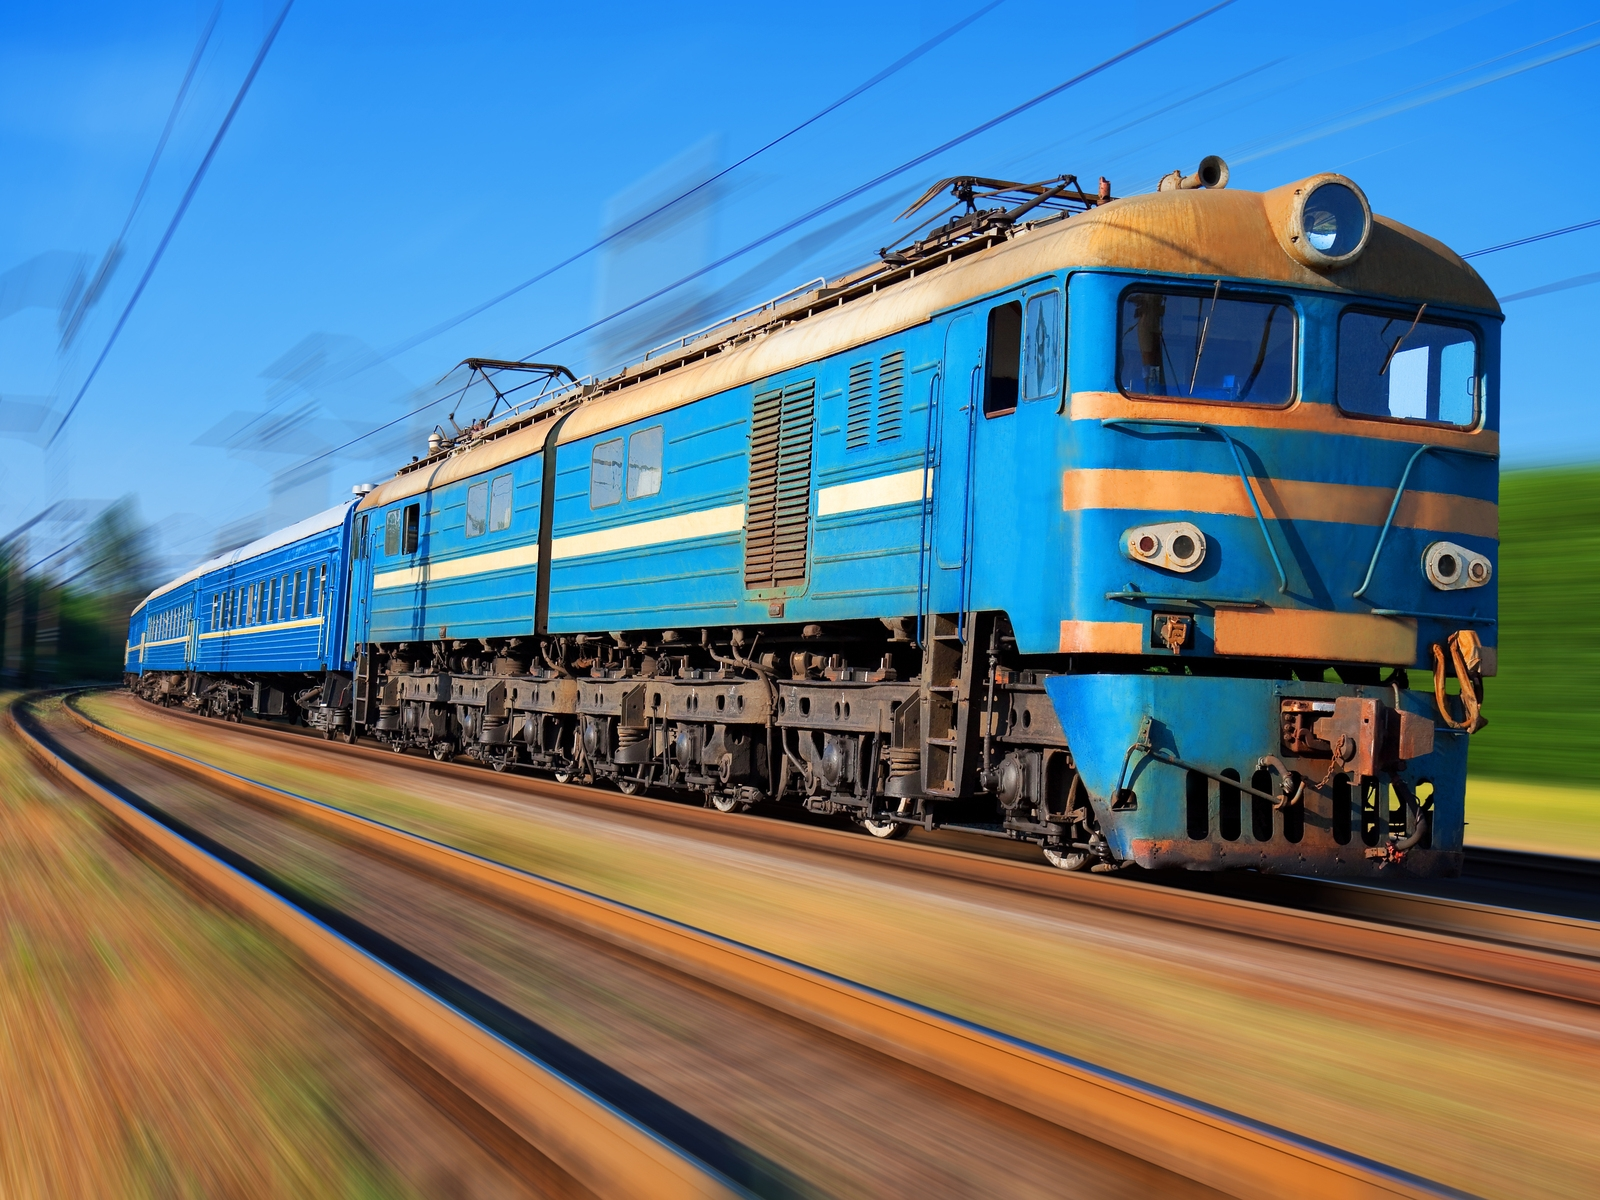 Old train wallpapers and images   wallpapers pictures photos 1600x1200